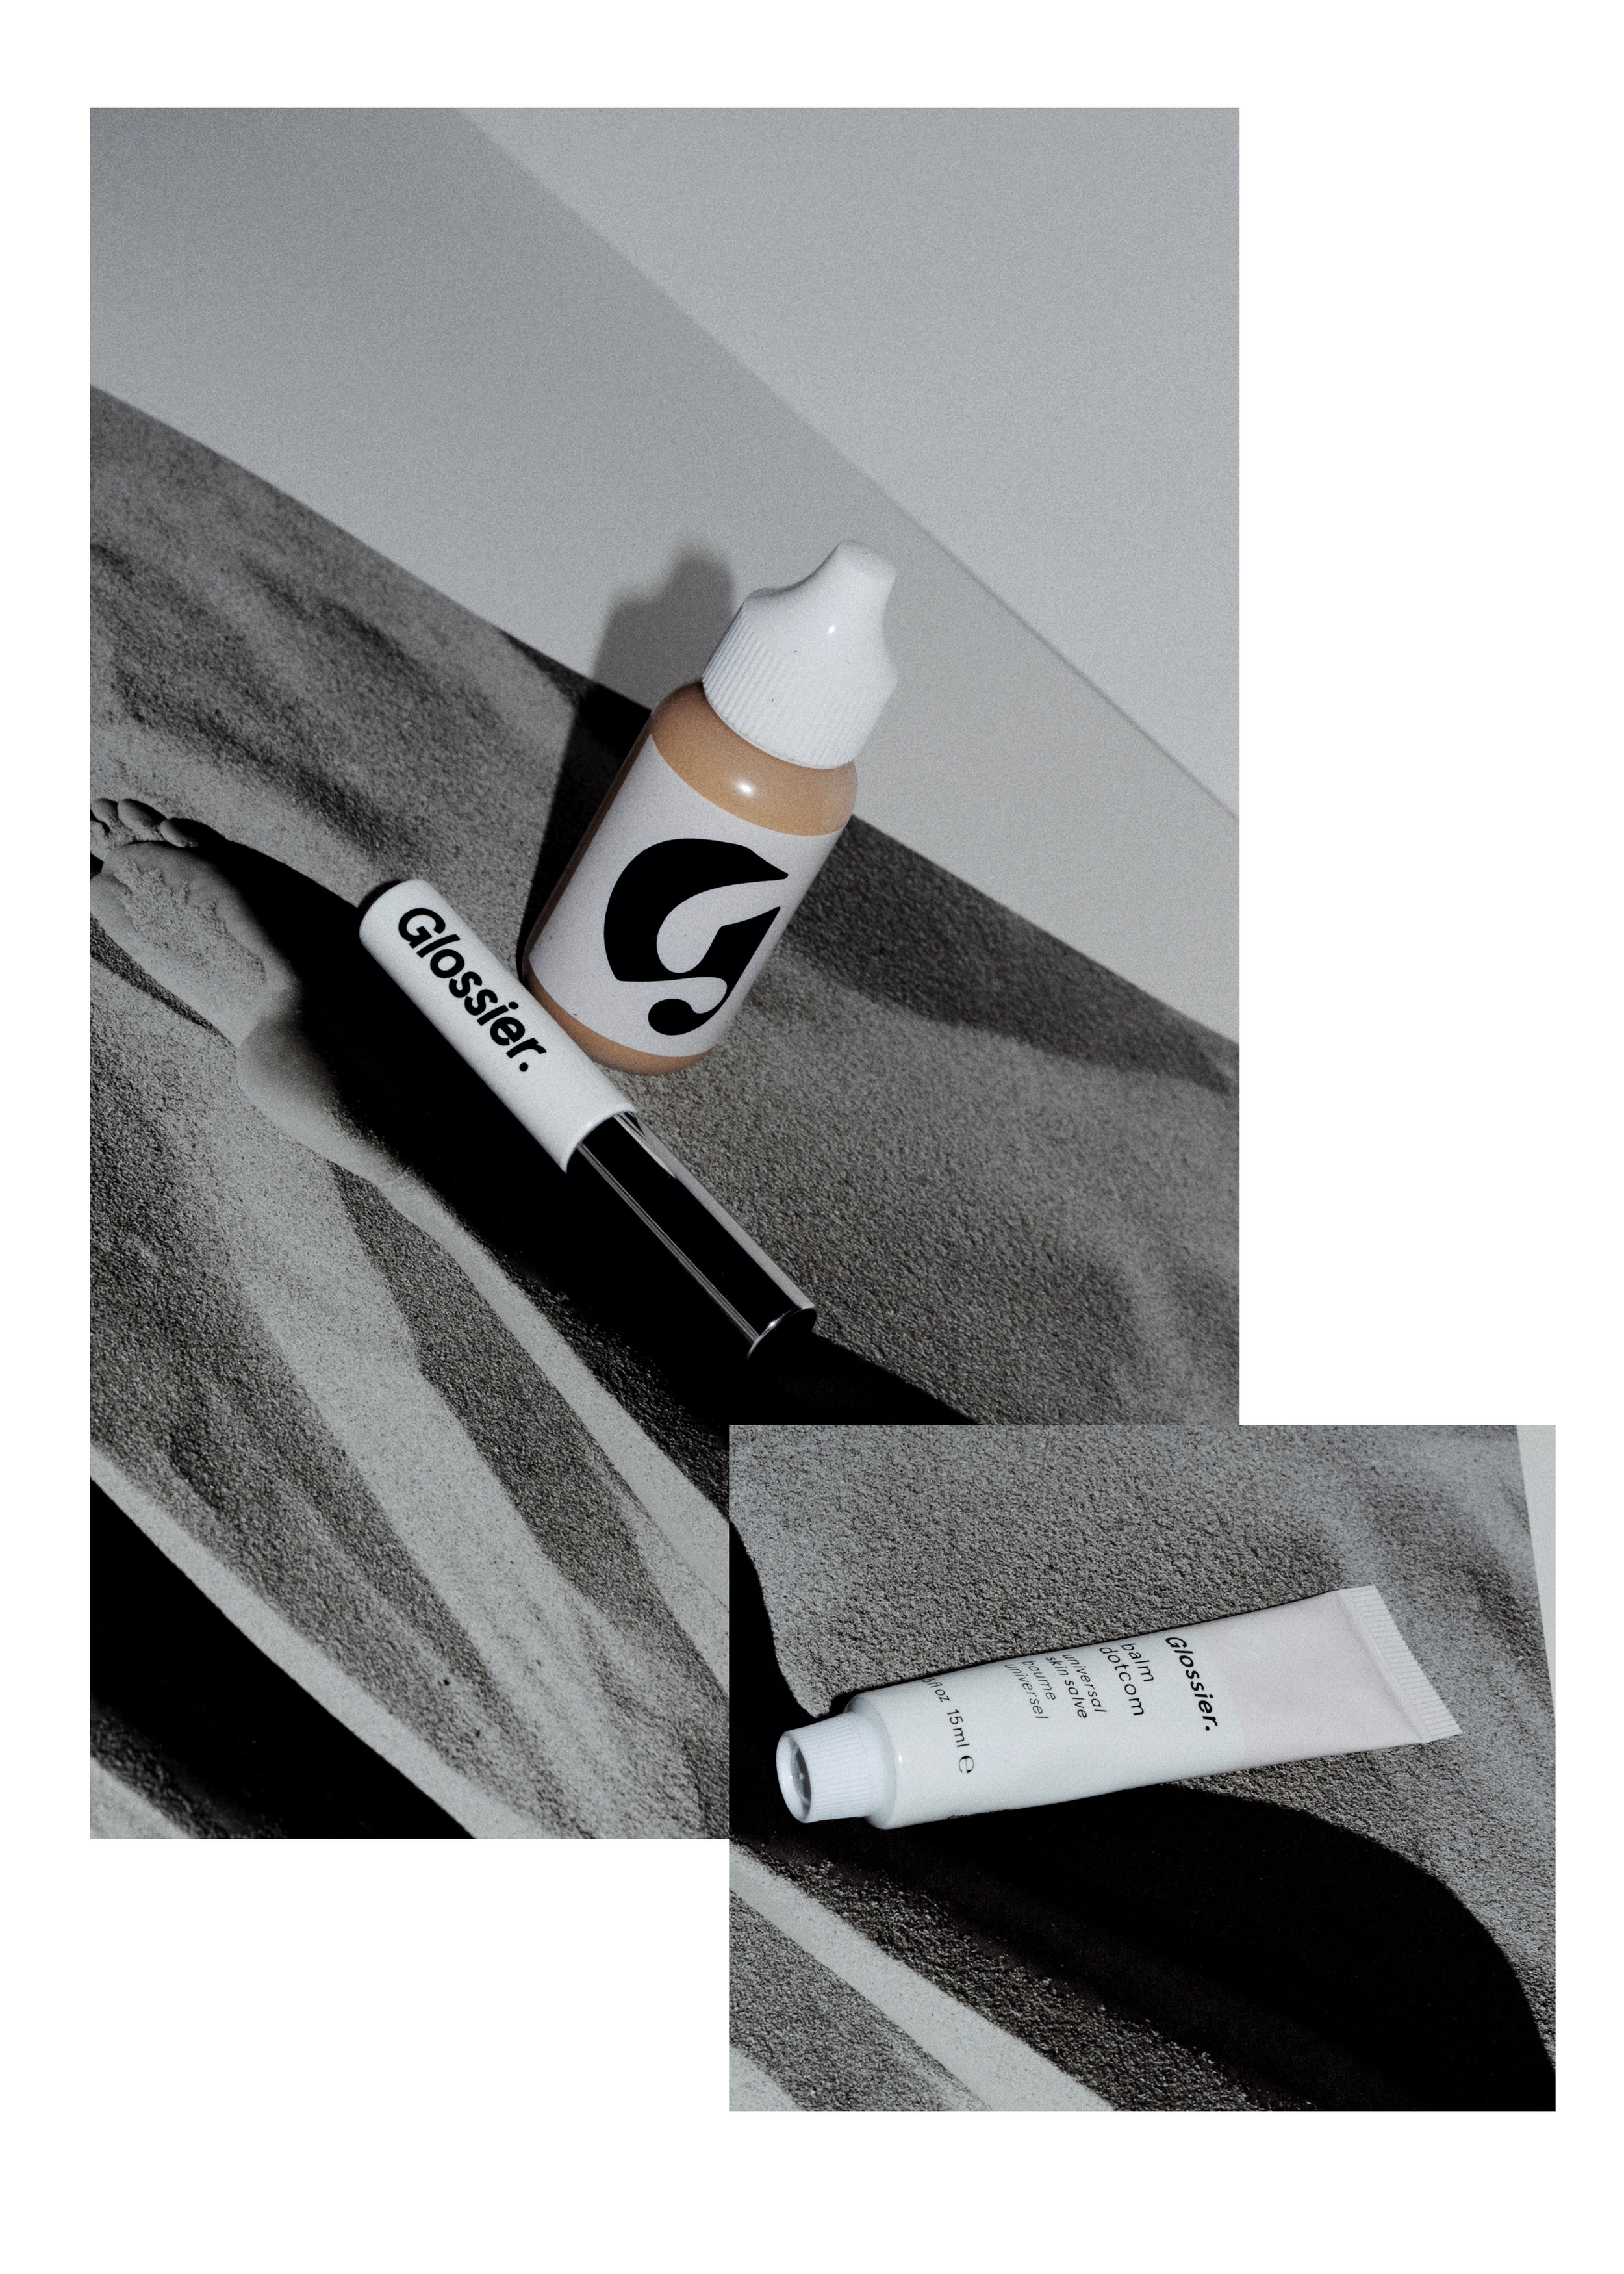 - Glossier has been one of the star brands of 2017, without a doubt. Their celebration of enhancing your own features without having to cover them up, while catering to the girl on the go is everything I love in a brand and more.GLOSSIER SKIN TINT: Ultra light-weight and giving your skin some serious glow, this is the perfect foundation for those, who like me, don't love a heavy layer of makeup. It evens out the skin tone, and gets rid of redness, which is all I look for in a base product. It lets my own skin breath and still be herself!GLOSSIER BOY BROW: Clear, Brown, Black - yeah, I've got them all- and use them EVERY.SINGLE.DAY. It perfectly tames the brows, while plumping them and providing a soft, and never crunchy hold. I own about 5 and you will never catch me without it.GLOSSIER OG BALM DOTCOM: Although not technically a makeup item, I pretty much quit lipstick in 2017, so having soft and supple lips was a MUST for me. I've